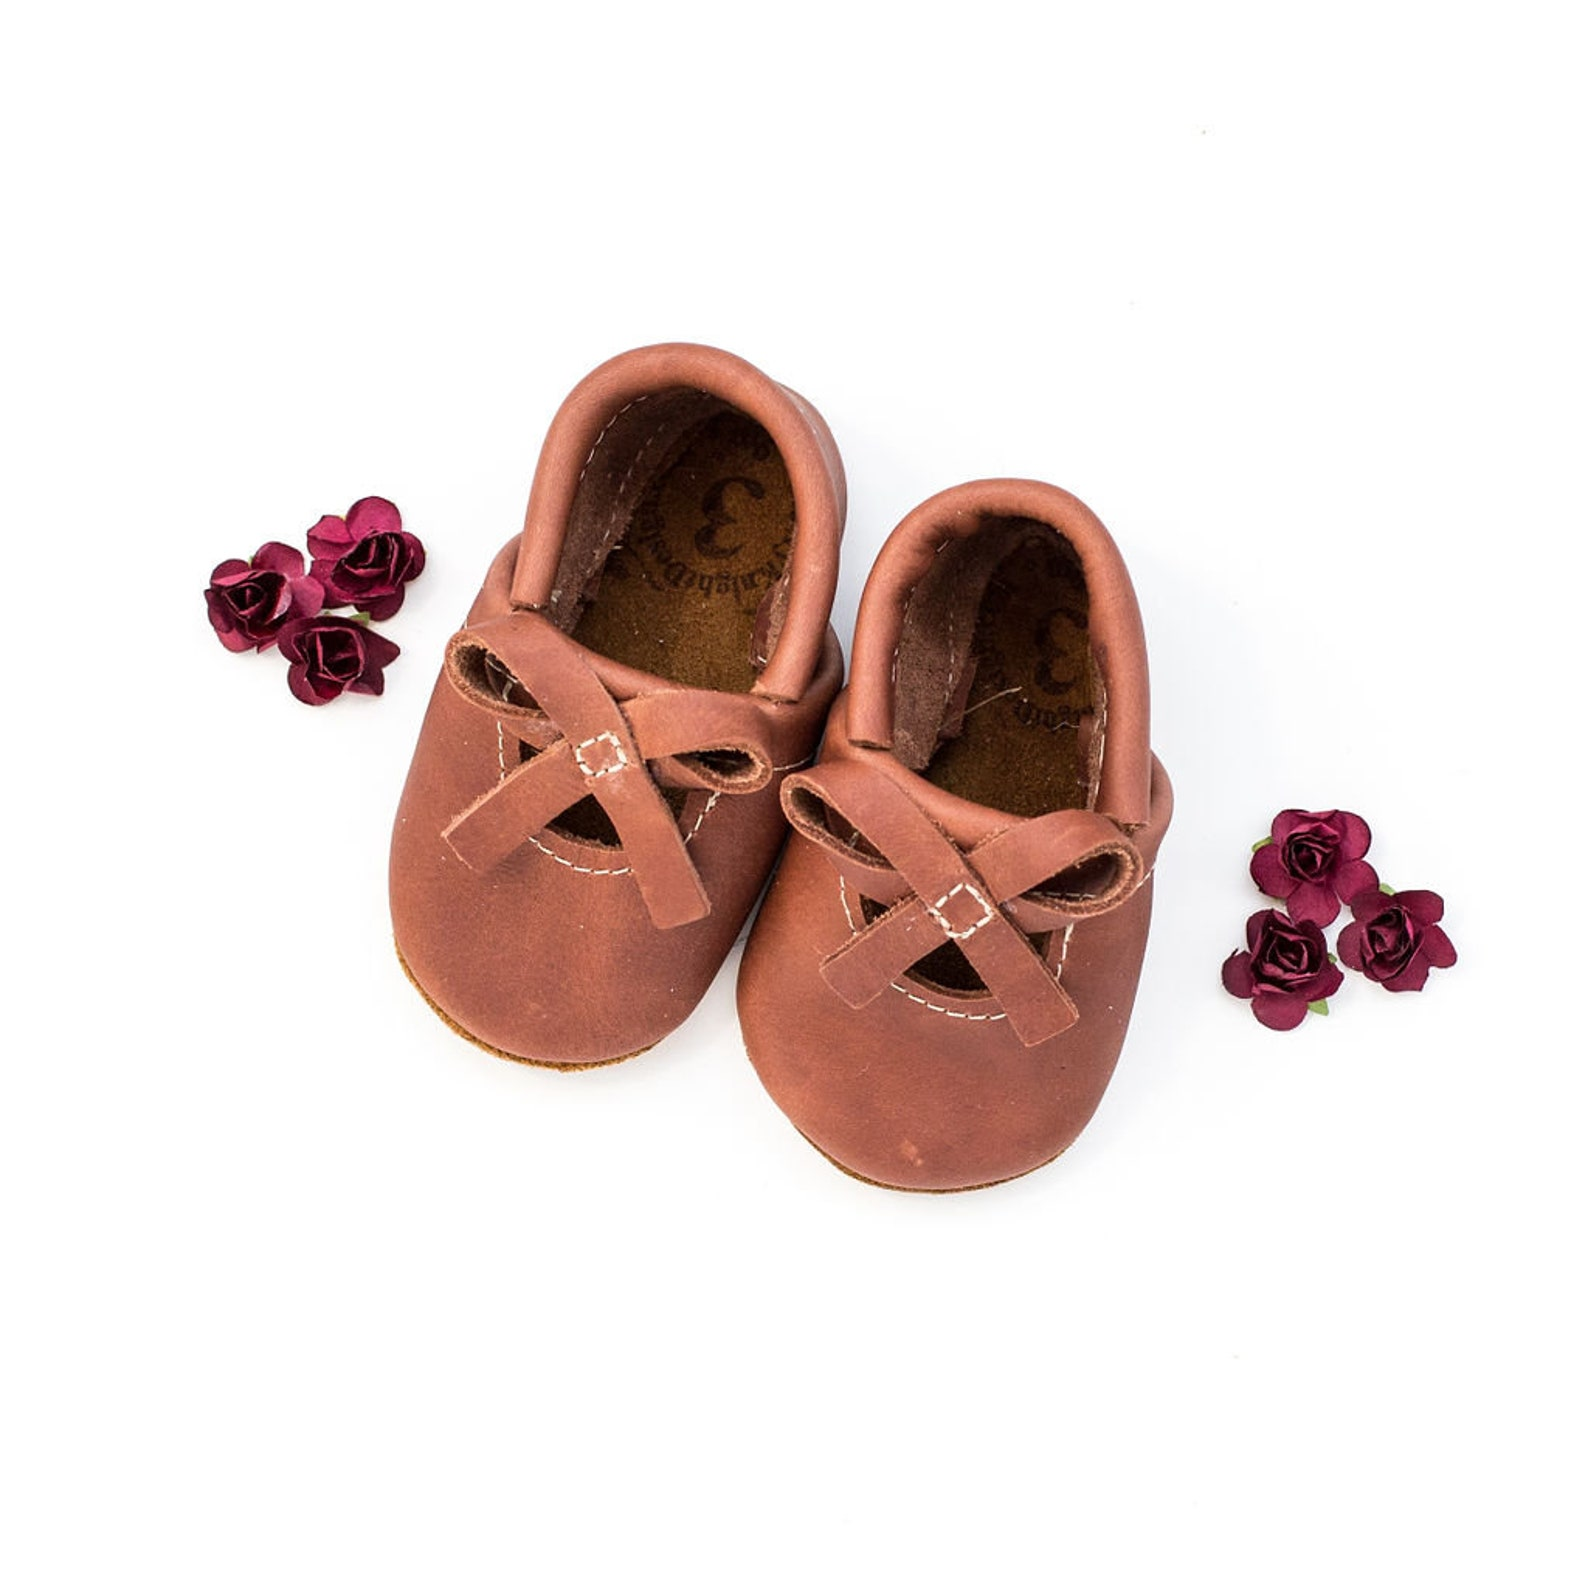 cedar ballet bow flats soft soled leather shoes baby and toddler //free shipping in usa// starry knight design